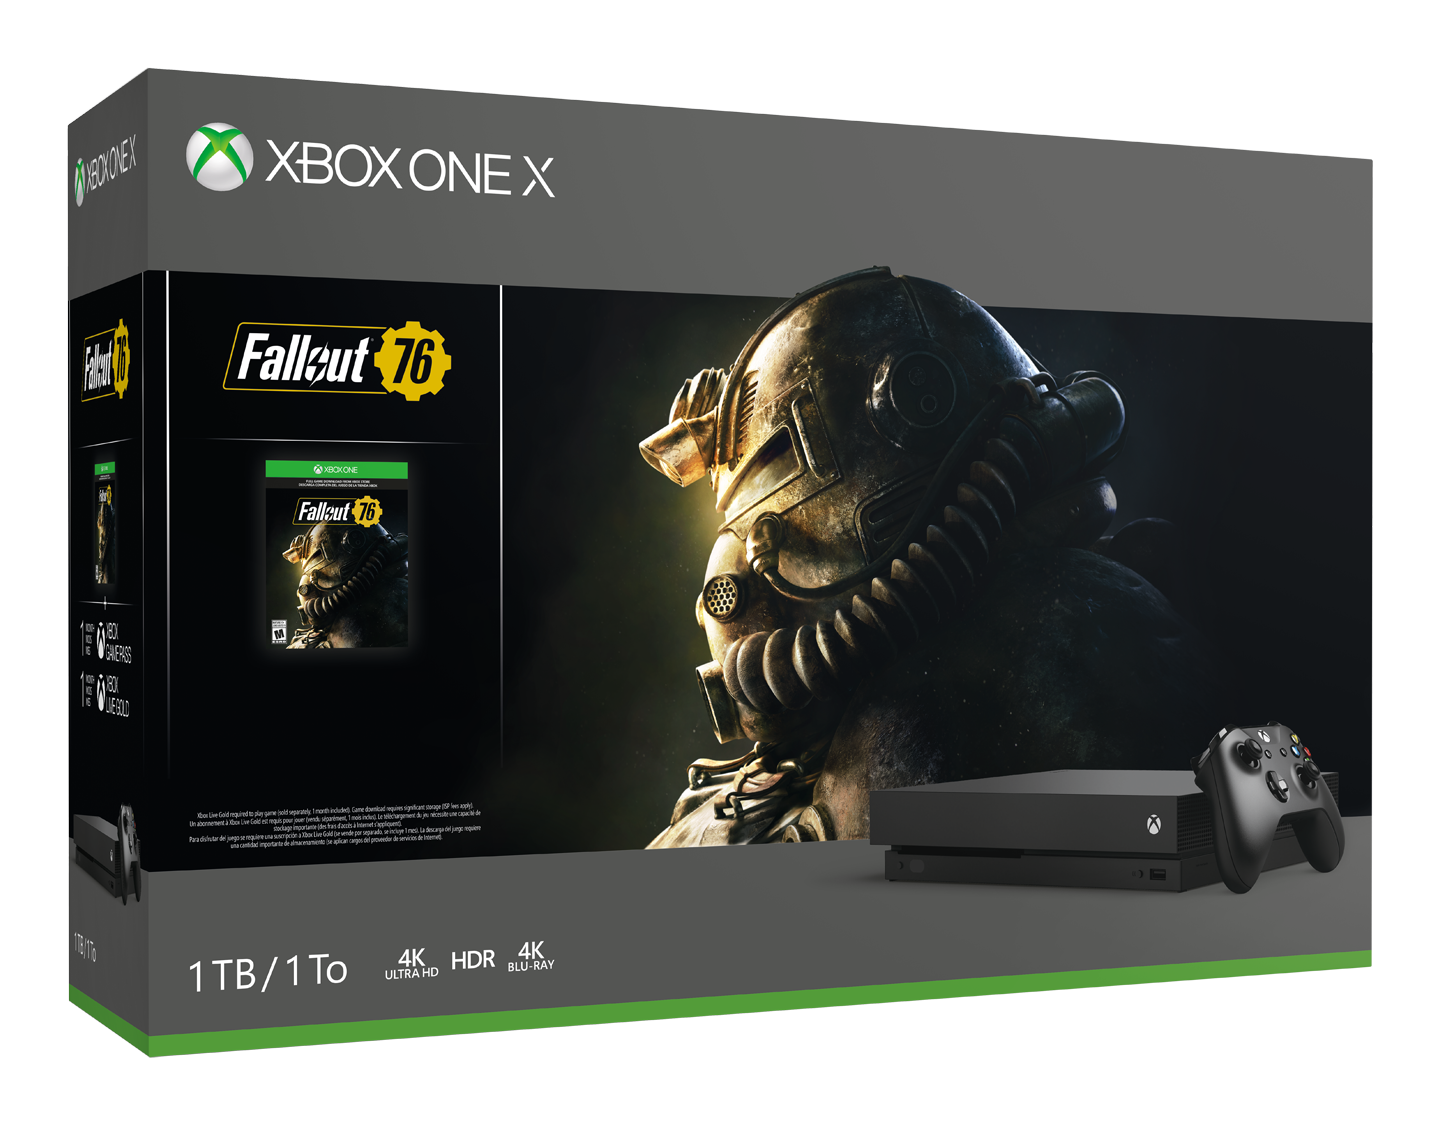 Xbox One X Fallout 76 Bundle